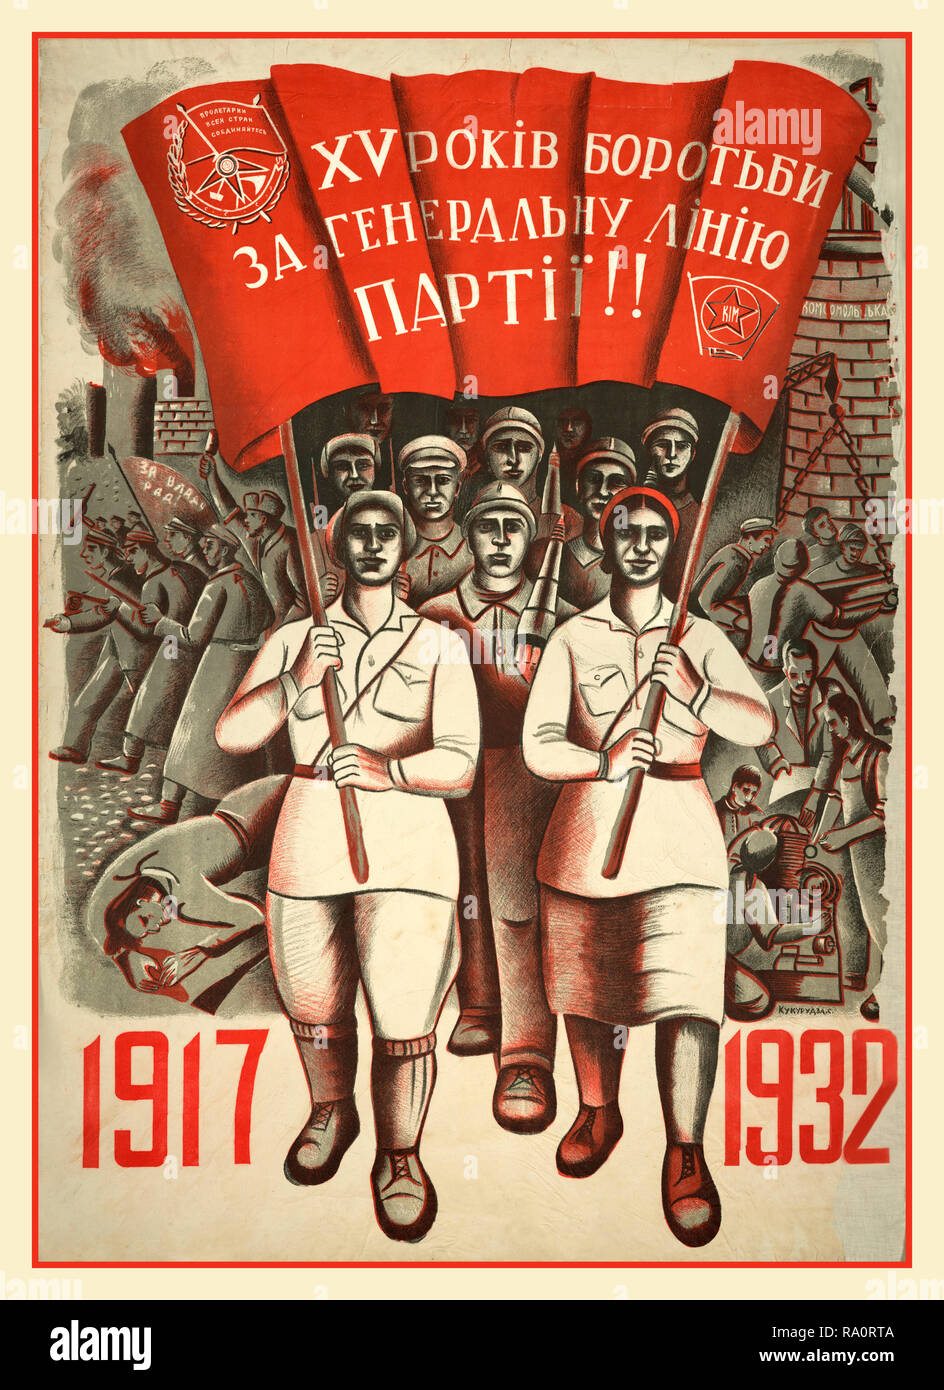 Vintage Russian Revolution Poster 1917-1932  The Russian Workers Bolshevism Revolution 1917-1932 - Stock Image